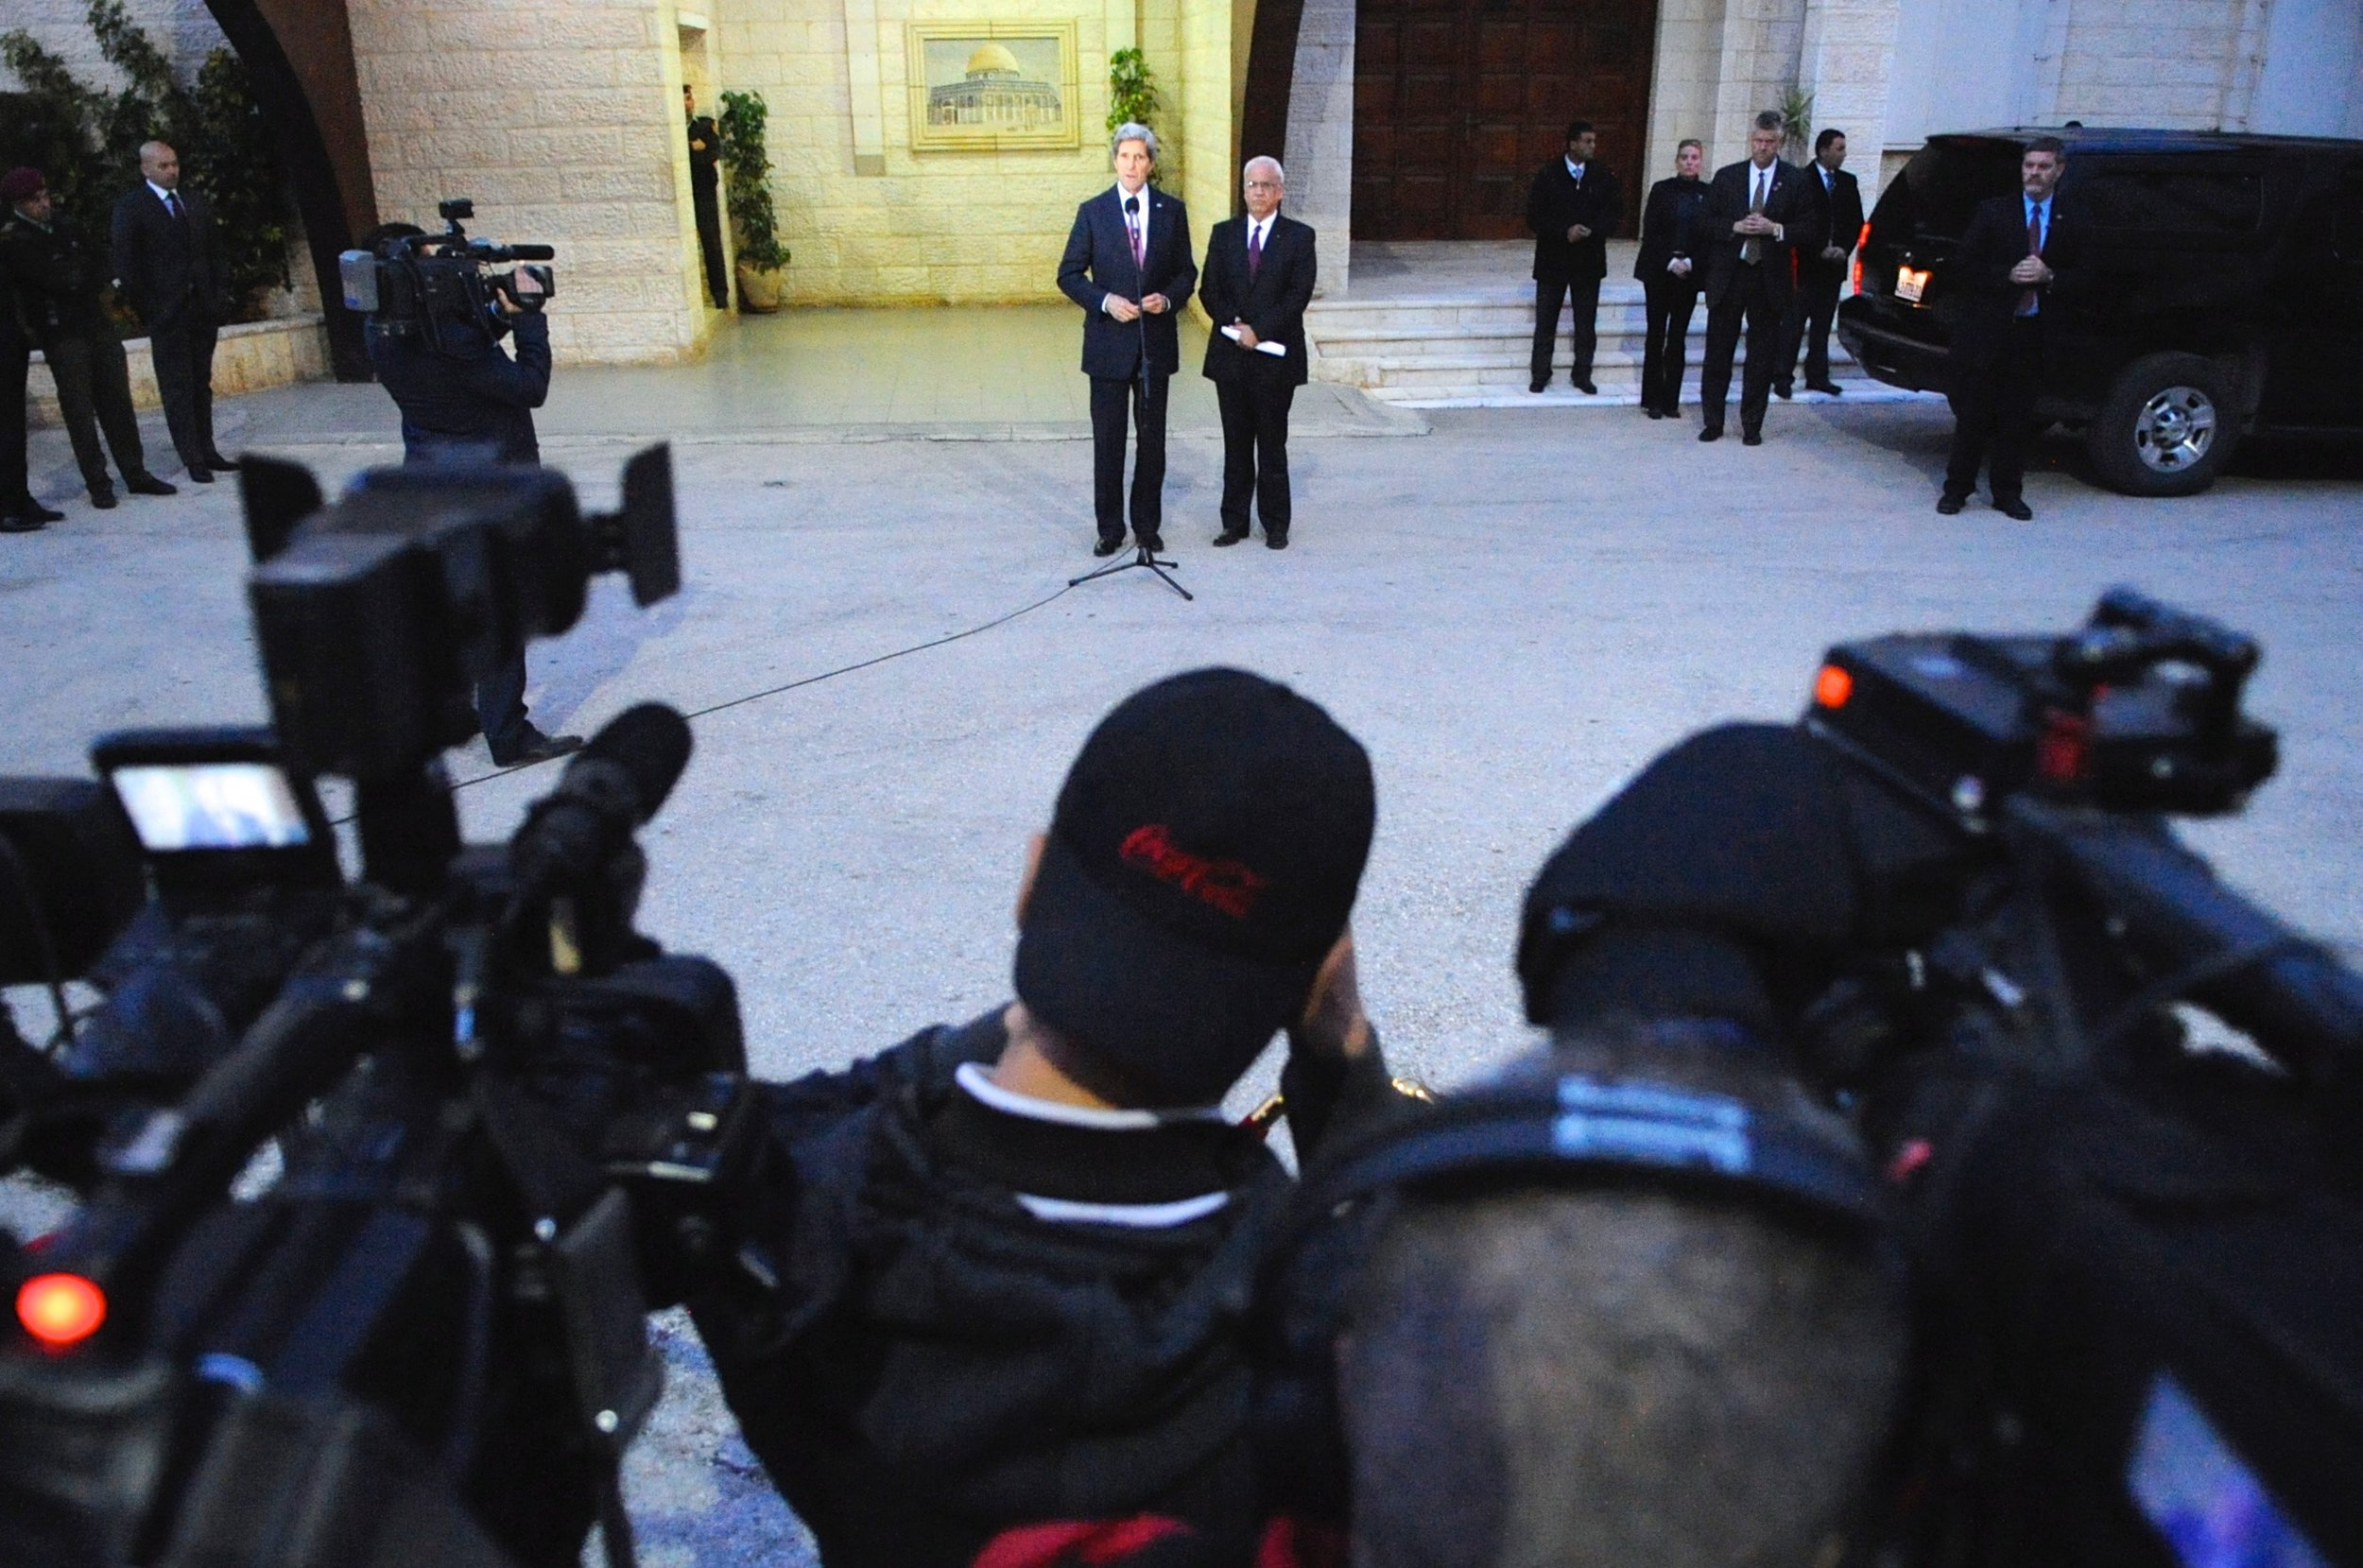 Secretary Kerry and Saeb Arakat address reporters outside the Palestinian Authority Headquarters in Ramallah, West Bank.